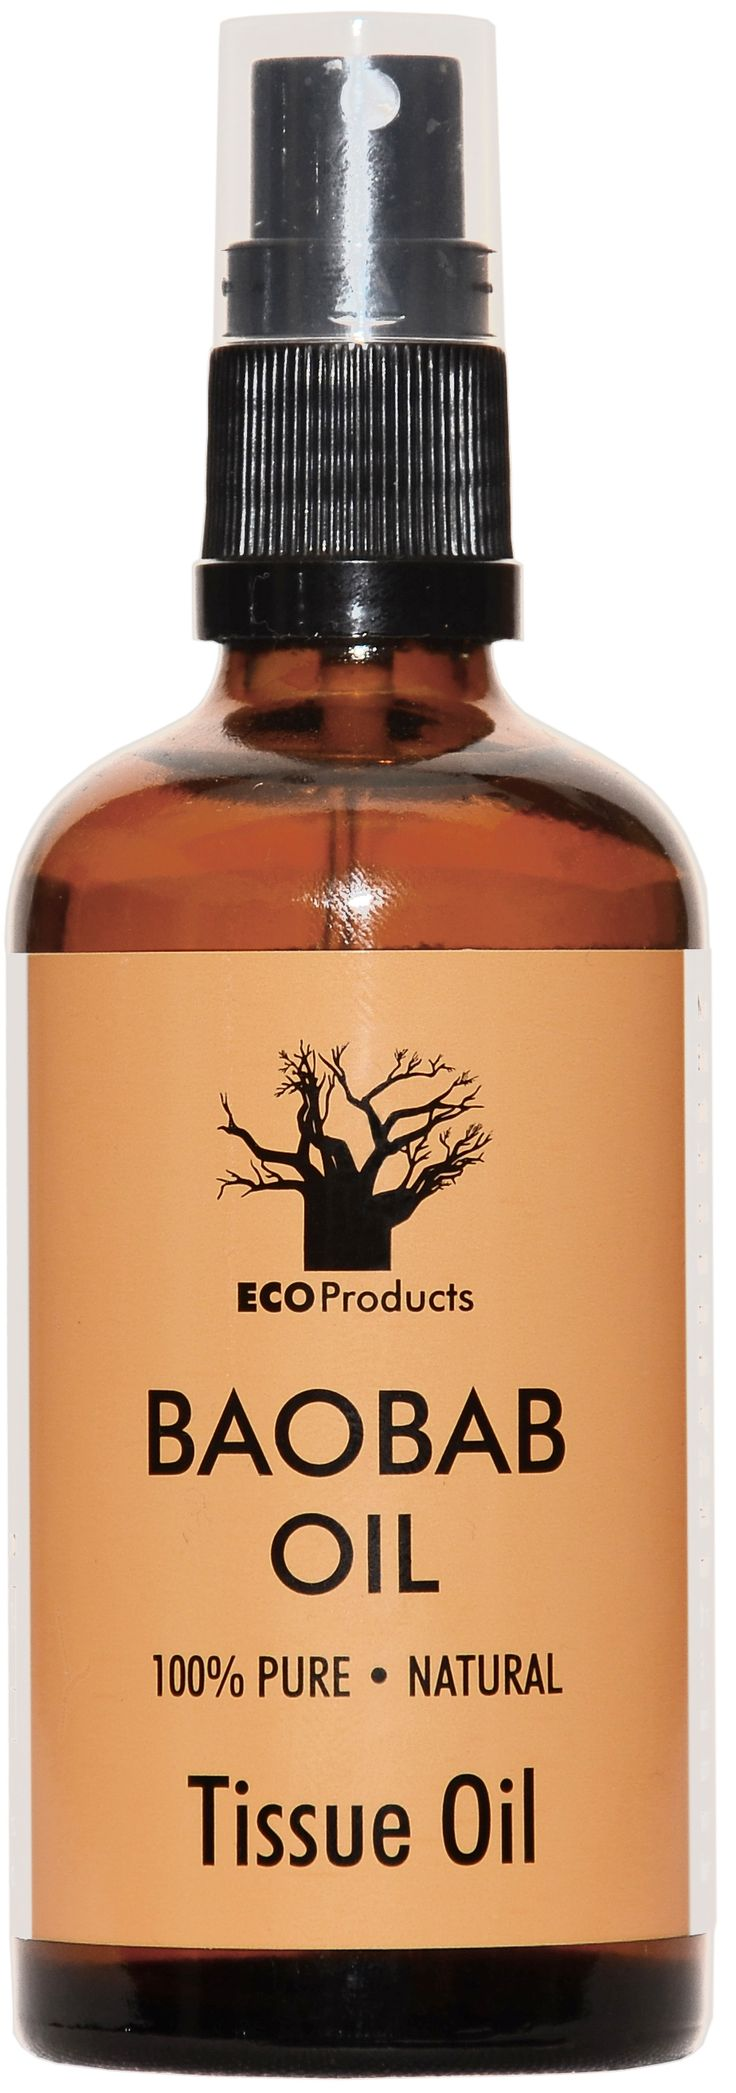 Read how baobab oil solved a skin problem in this family!